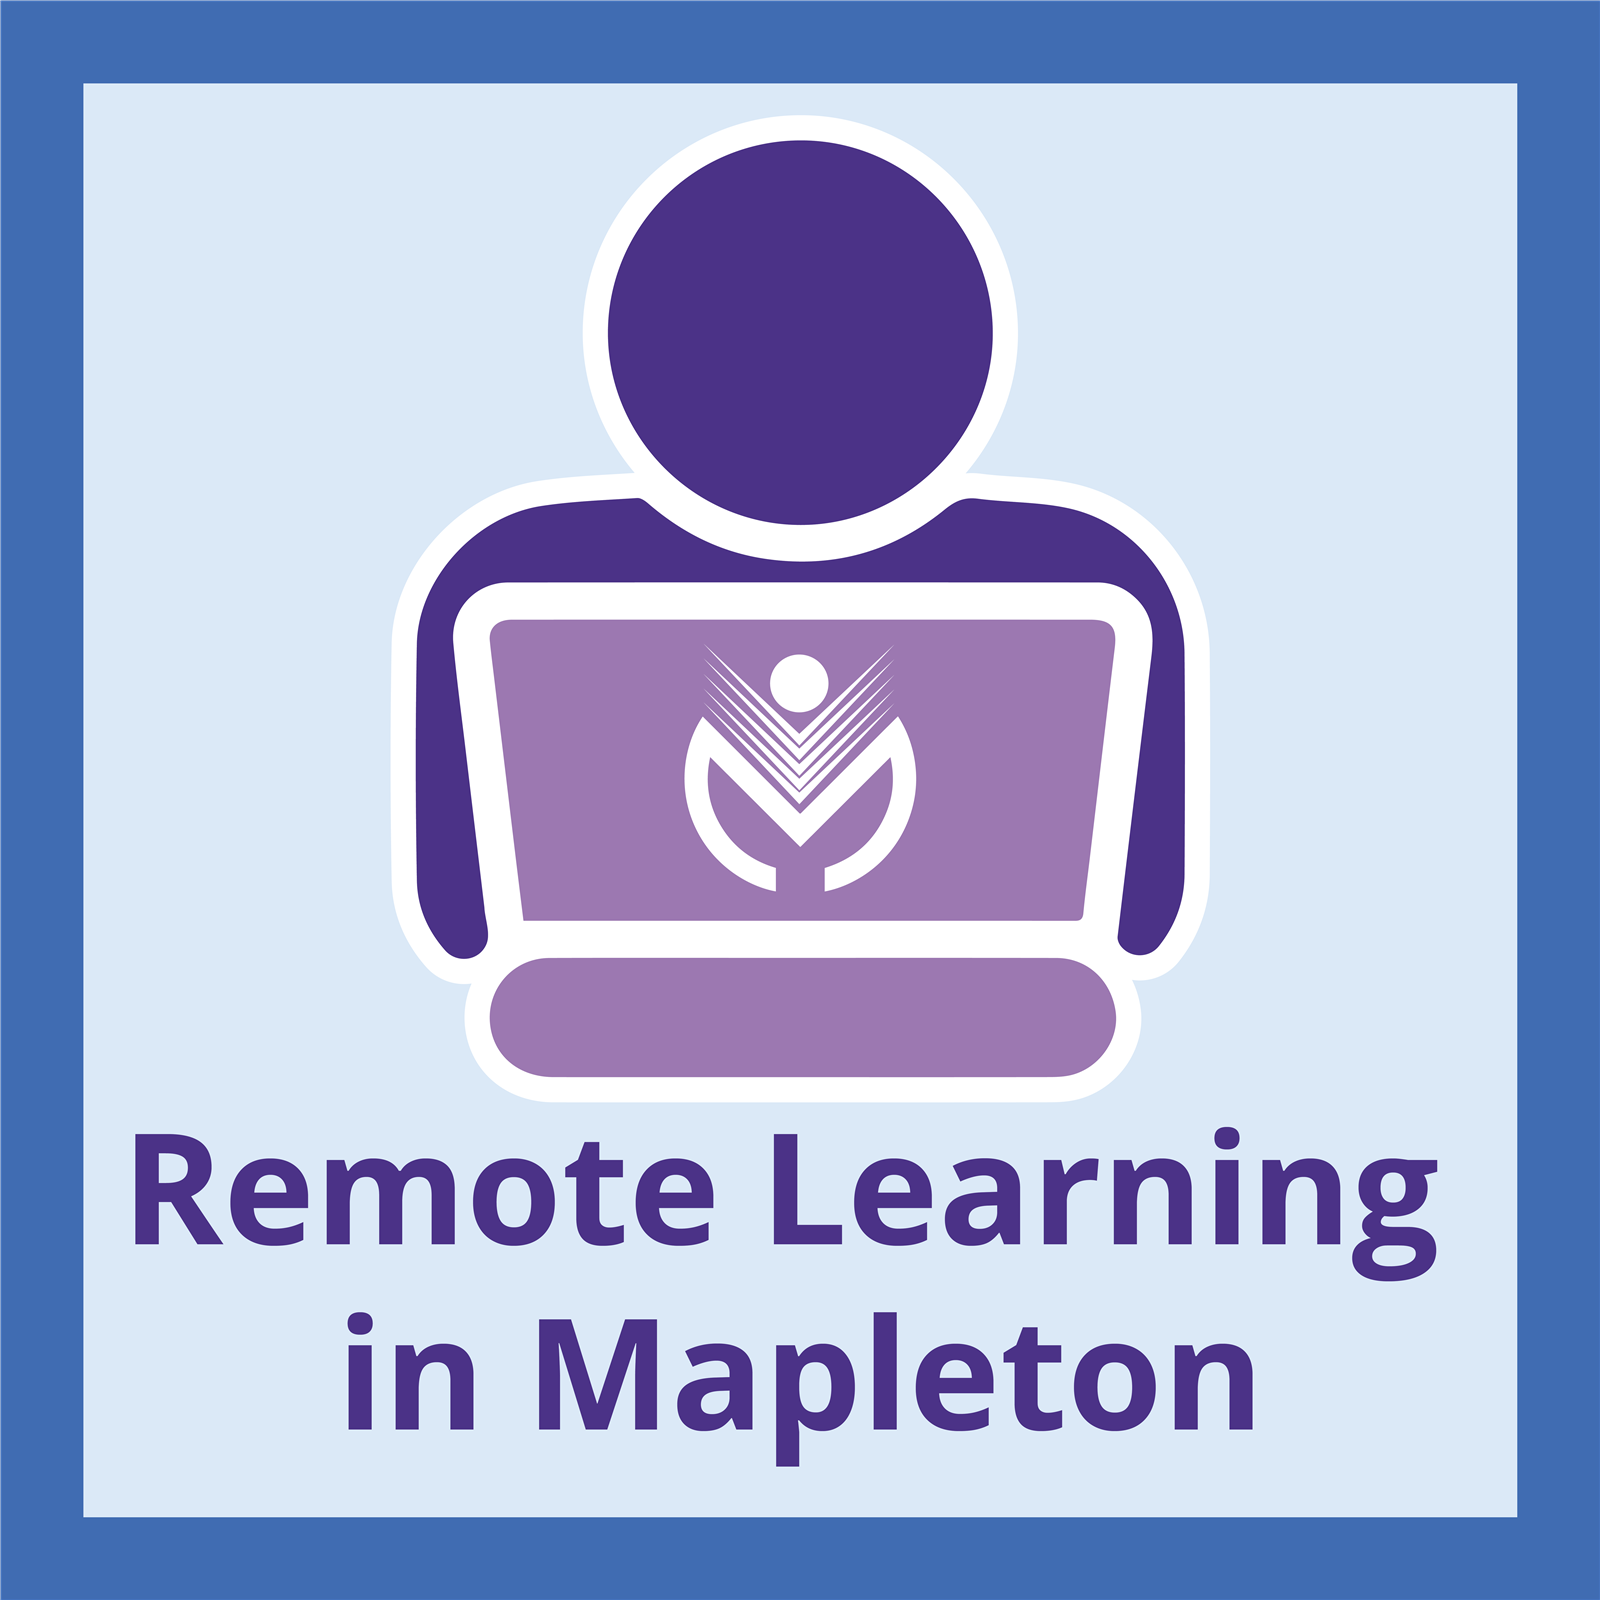 Remote Learning in Mapleton